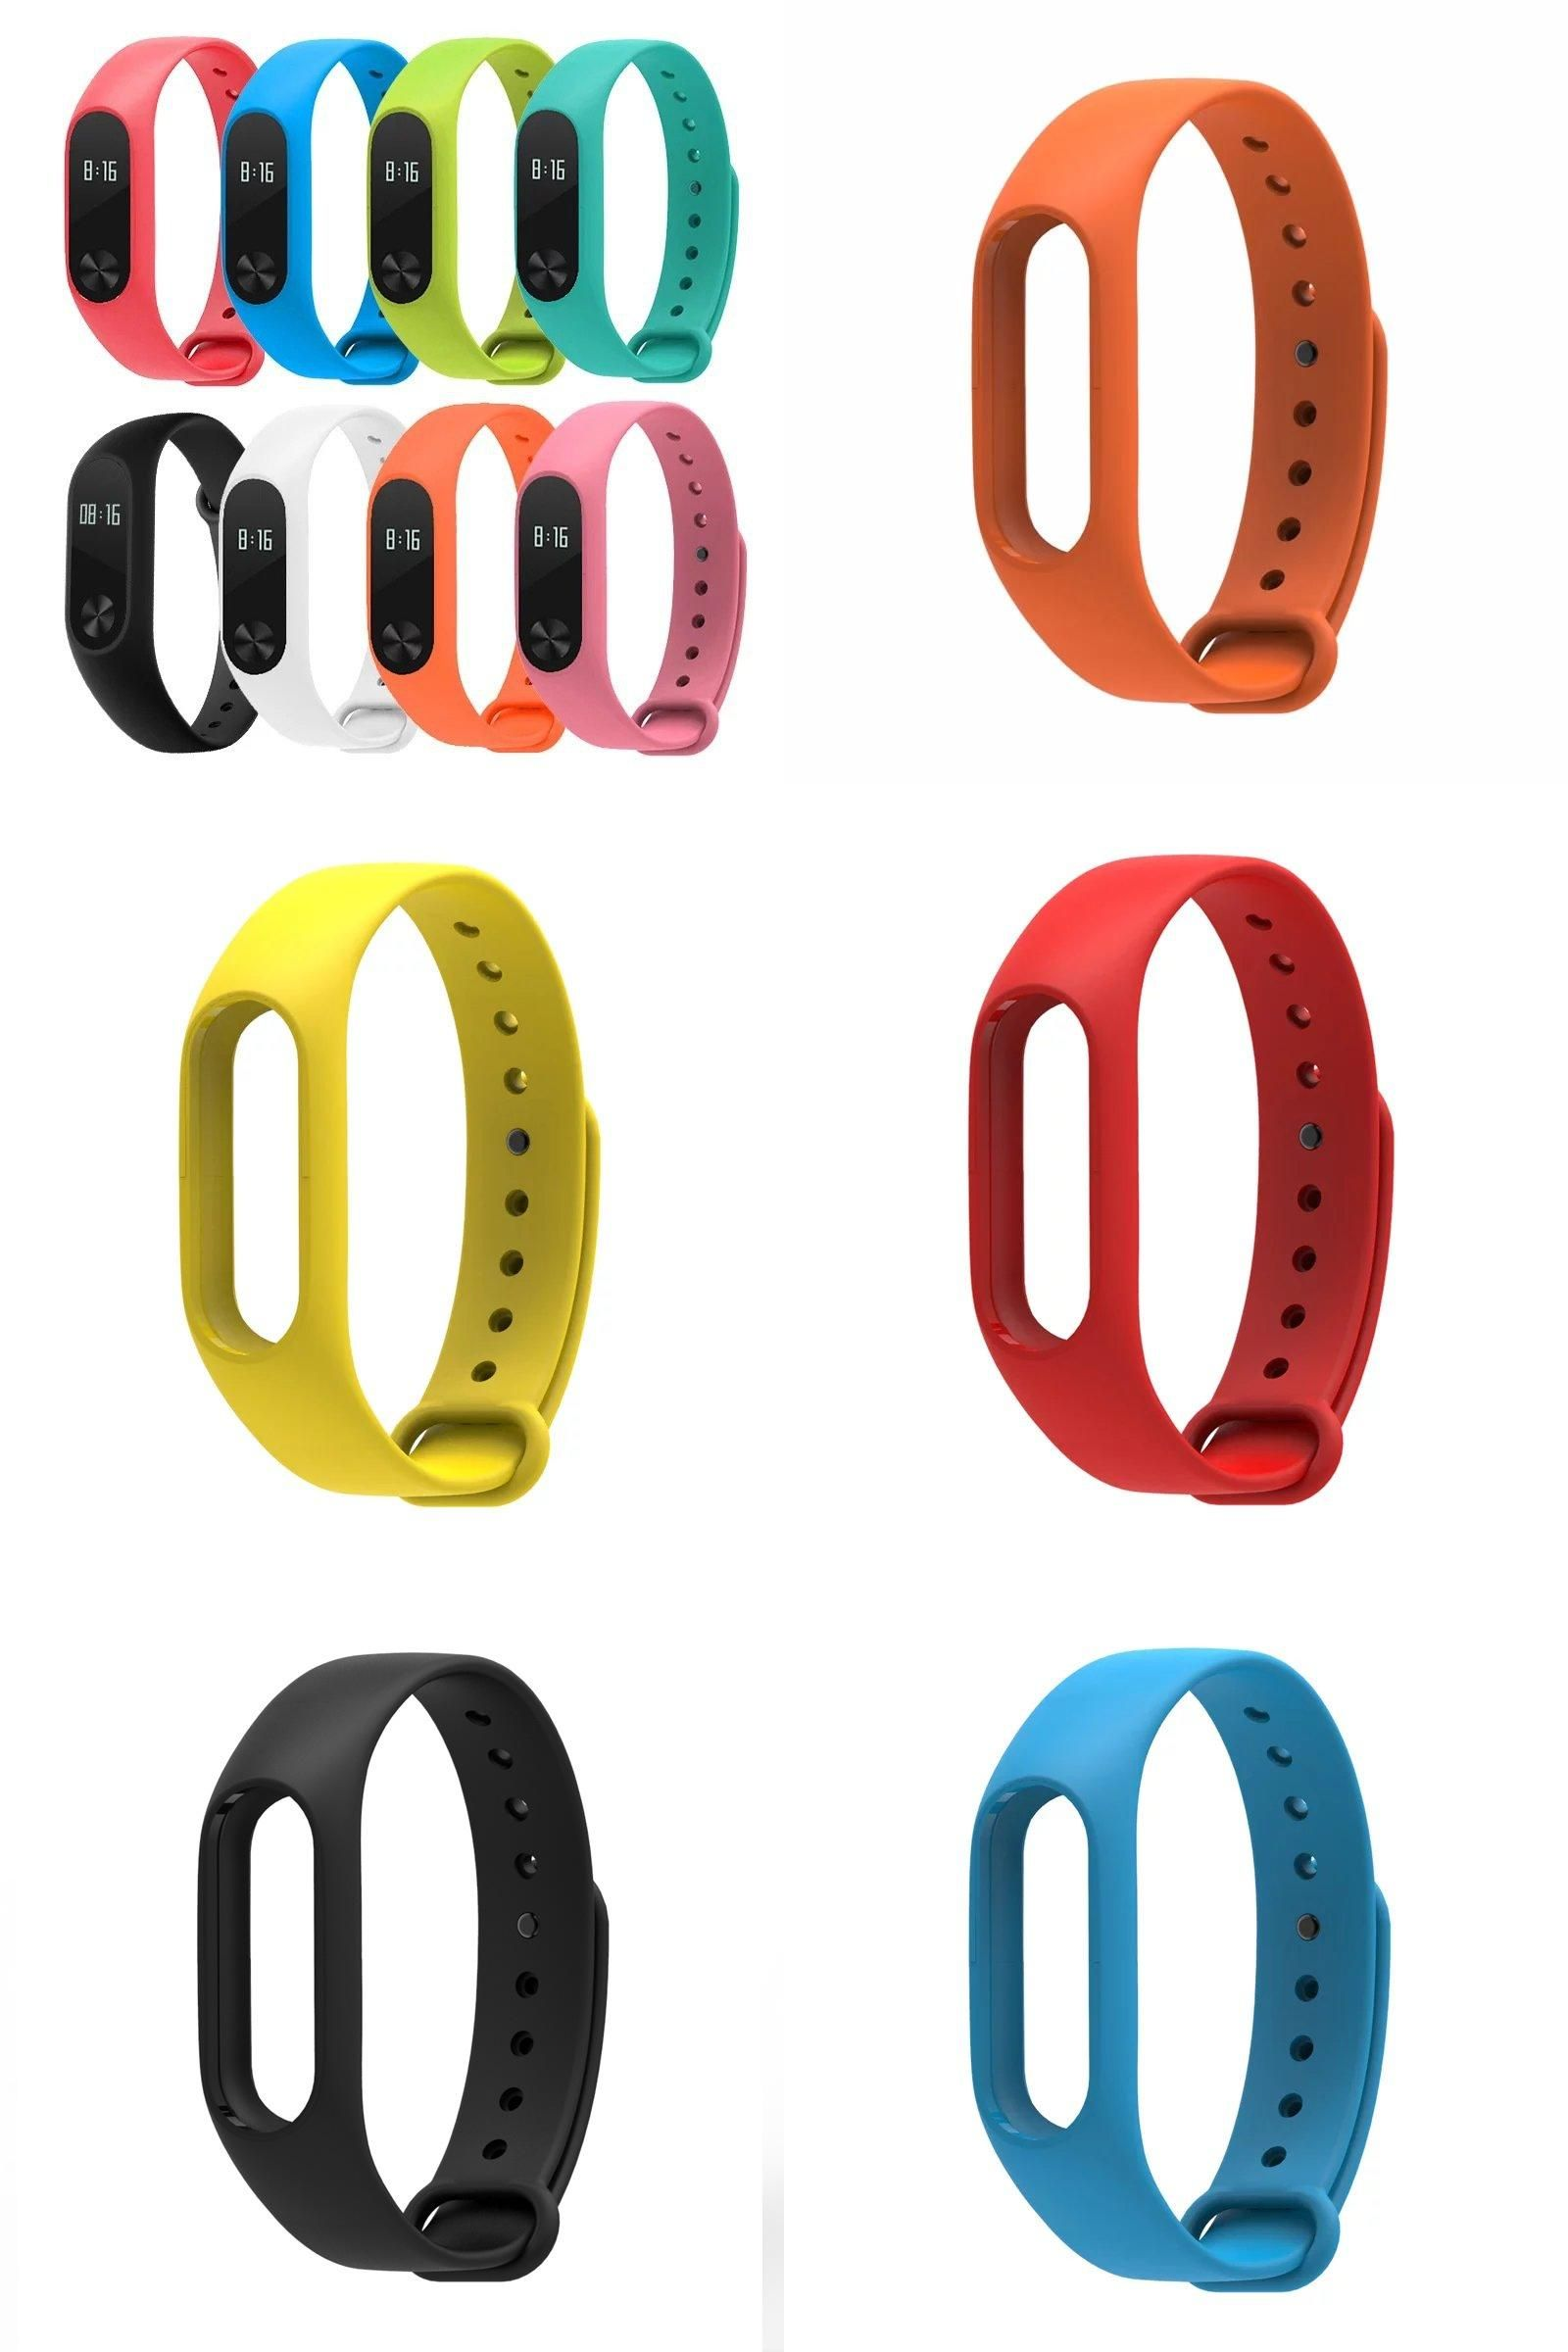 Visit To Buy For Xiaomi Mi Band 2 Strap Miband 2 Wristbands Mibos Colorful Strap Smart Bracelet 5 Color Replace Accessories Smart Bracelet Wristbands Xiaomi